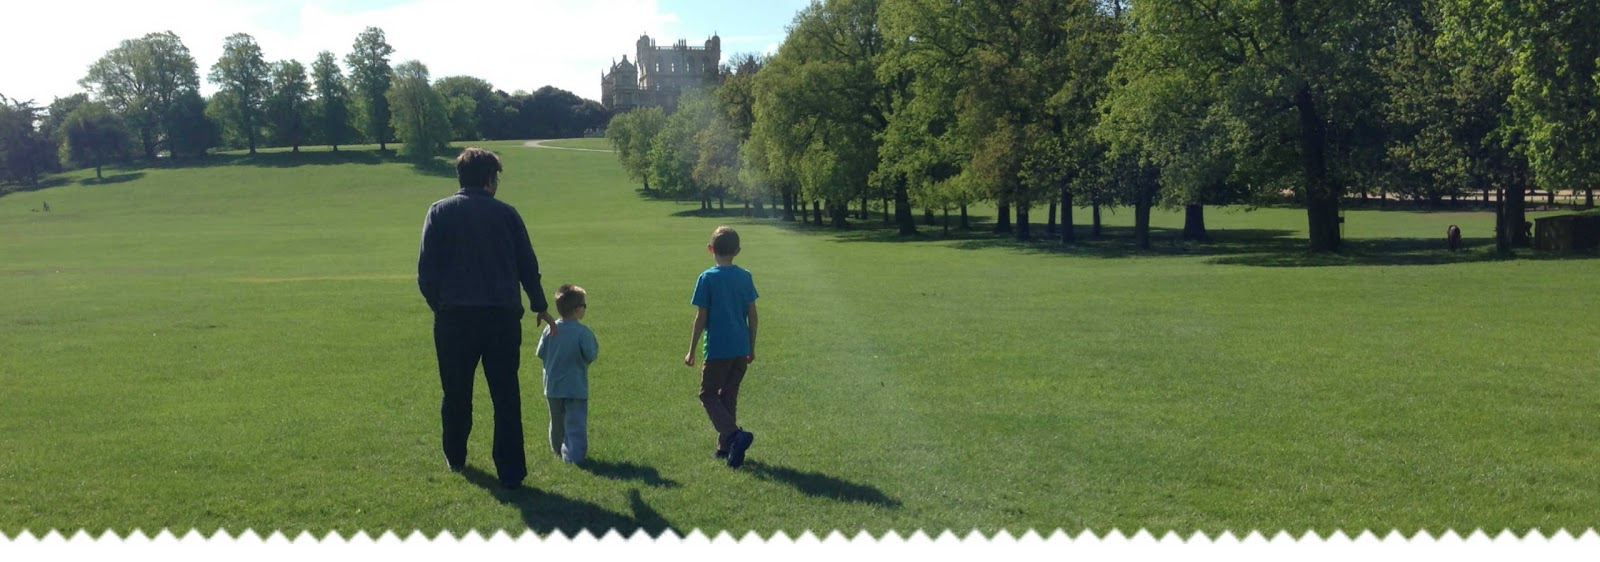 A dad and his boys walking at Wollaton Park